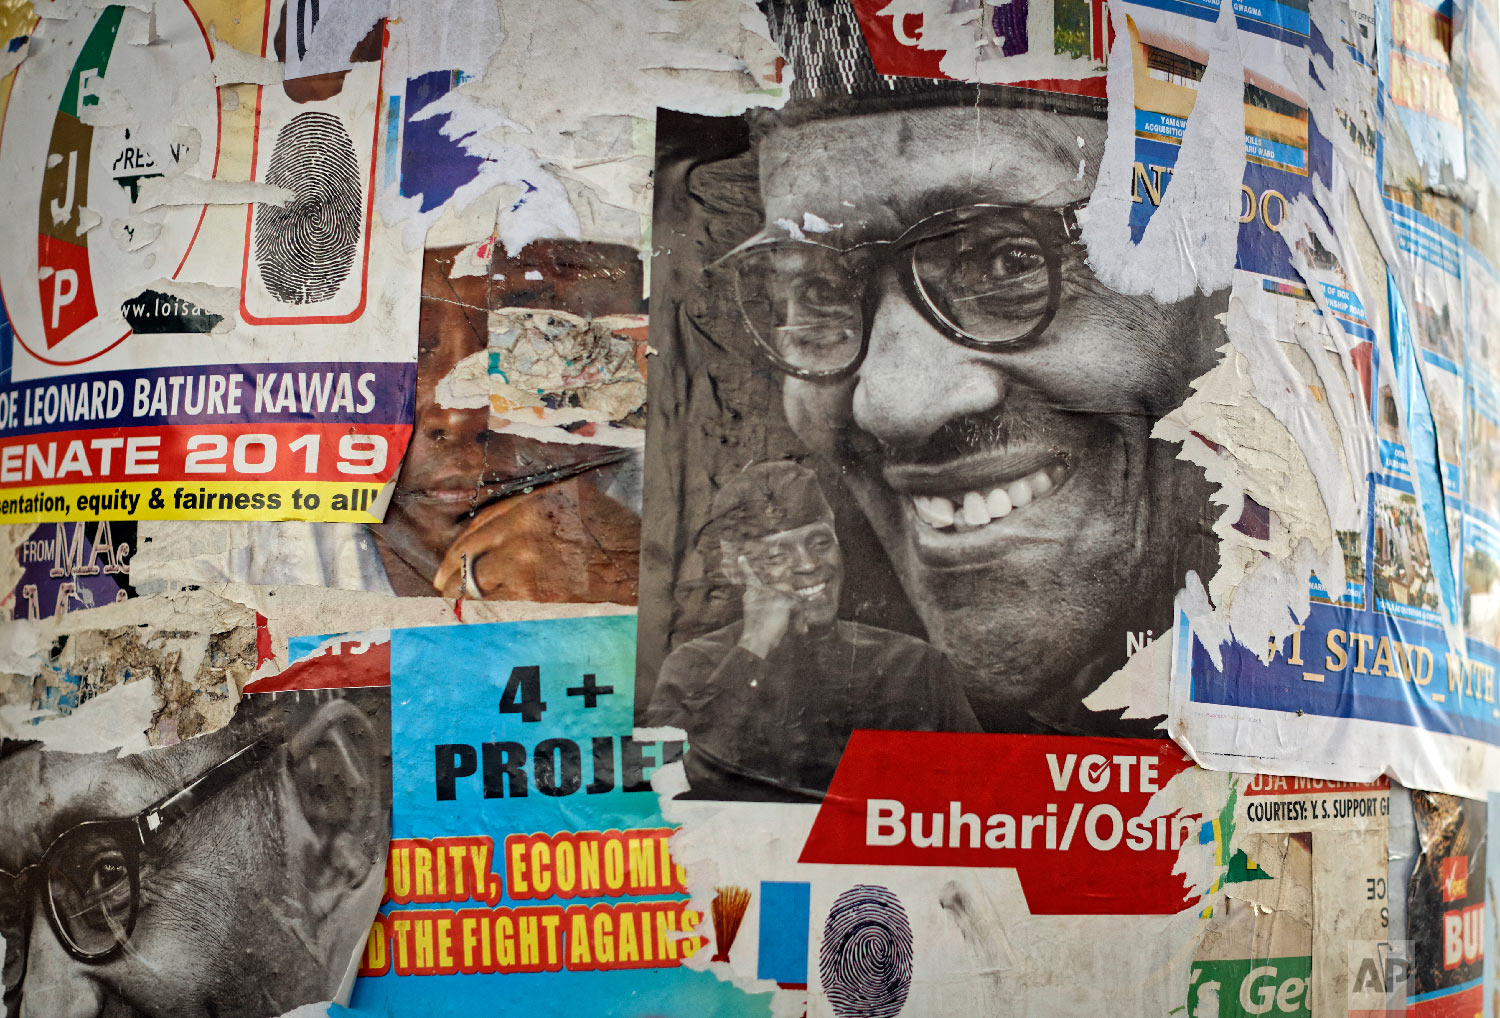 The faces of incumbent President Muhammadu Buhari and Vice President Yemi Osinbajo are seen on partially-ripped campaign posters near Nyanya, on the eastern outskirts of the capital Abuja, Nigeria, Feb. 12, 2019. (AP Photo/Ben Curtis)